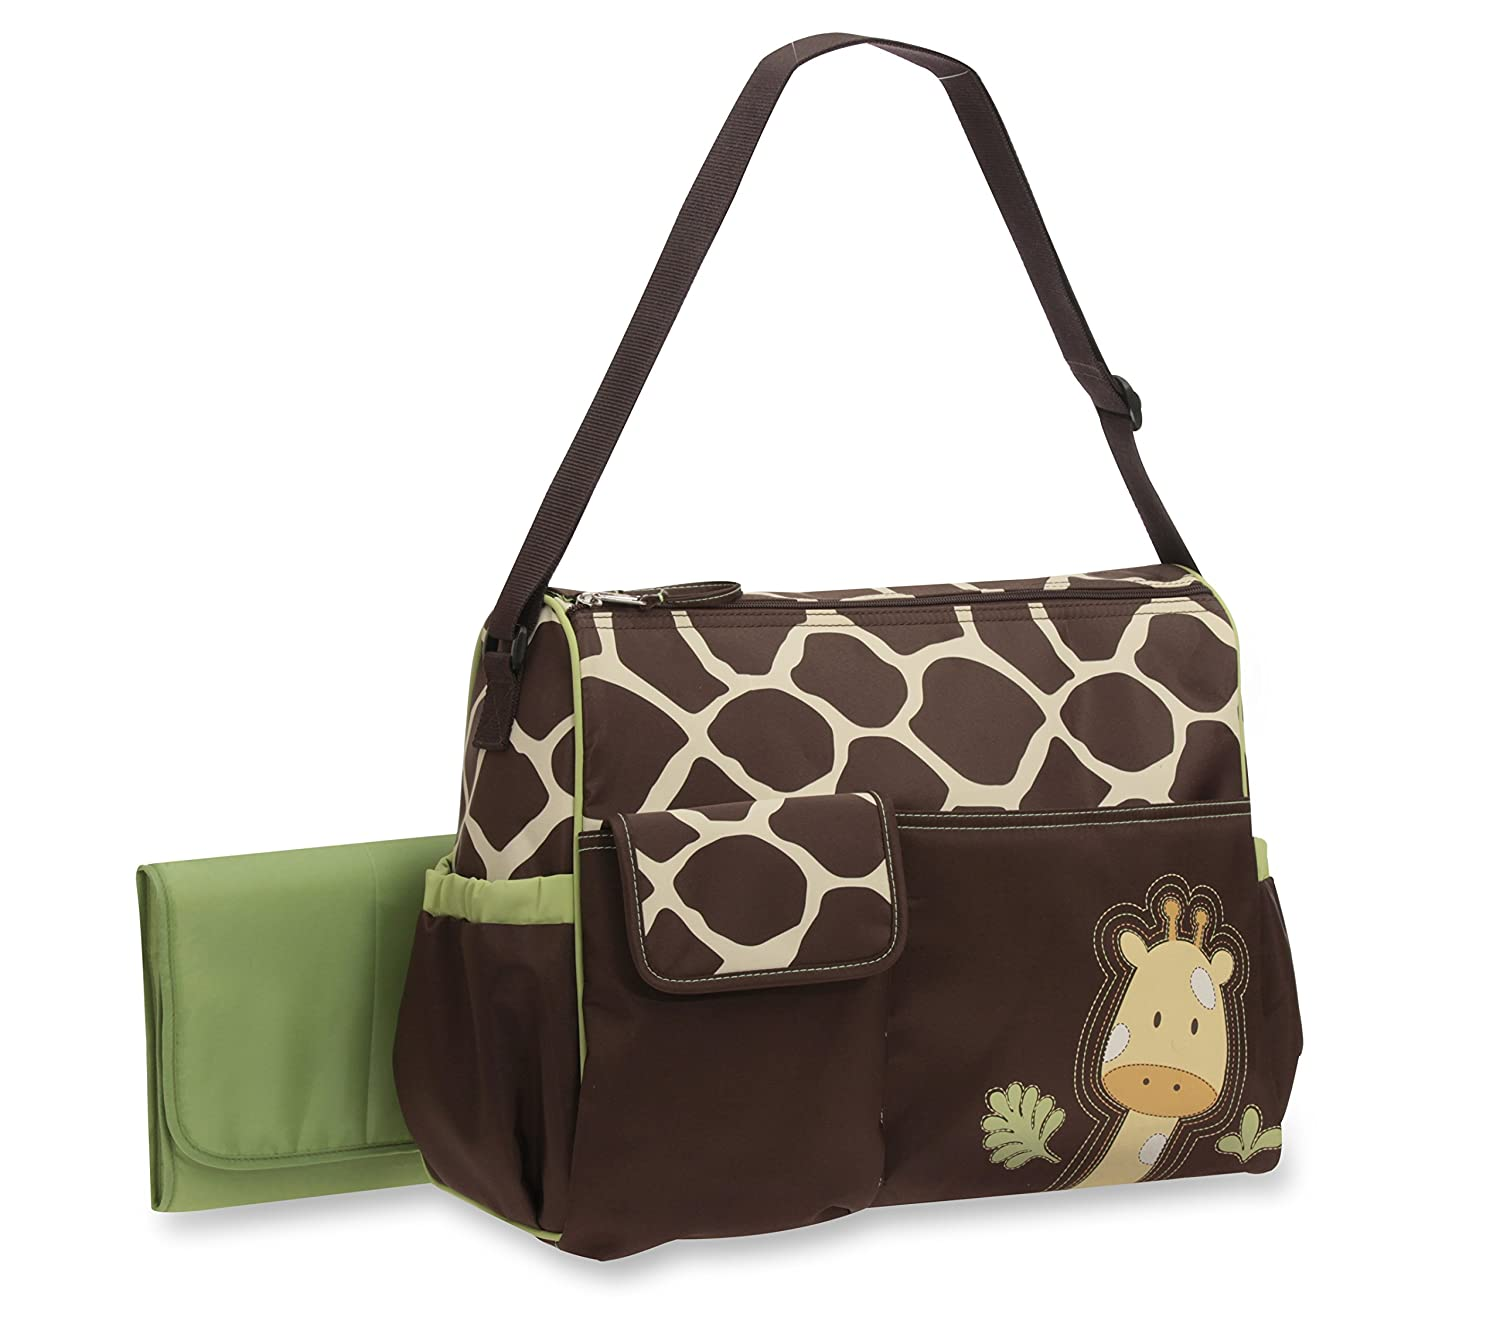 Baby Boom Animal Print Collection - Forest Giraffe Print Diaper Duffel Bag - Large, Roomy Bag, with Wipeable Diaper Changing Pad - Great for ...